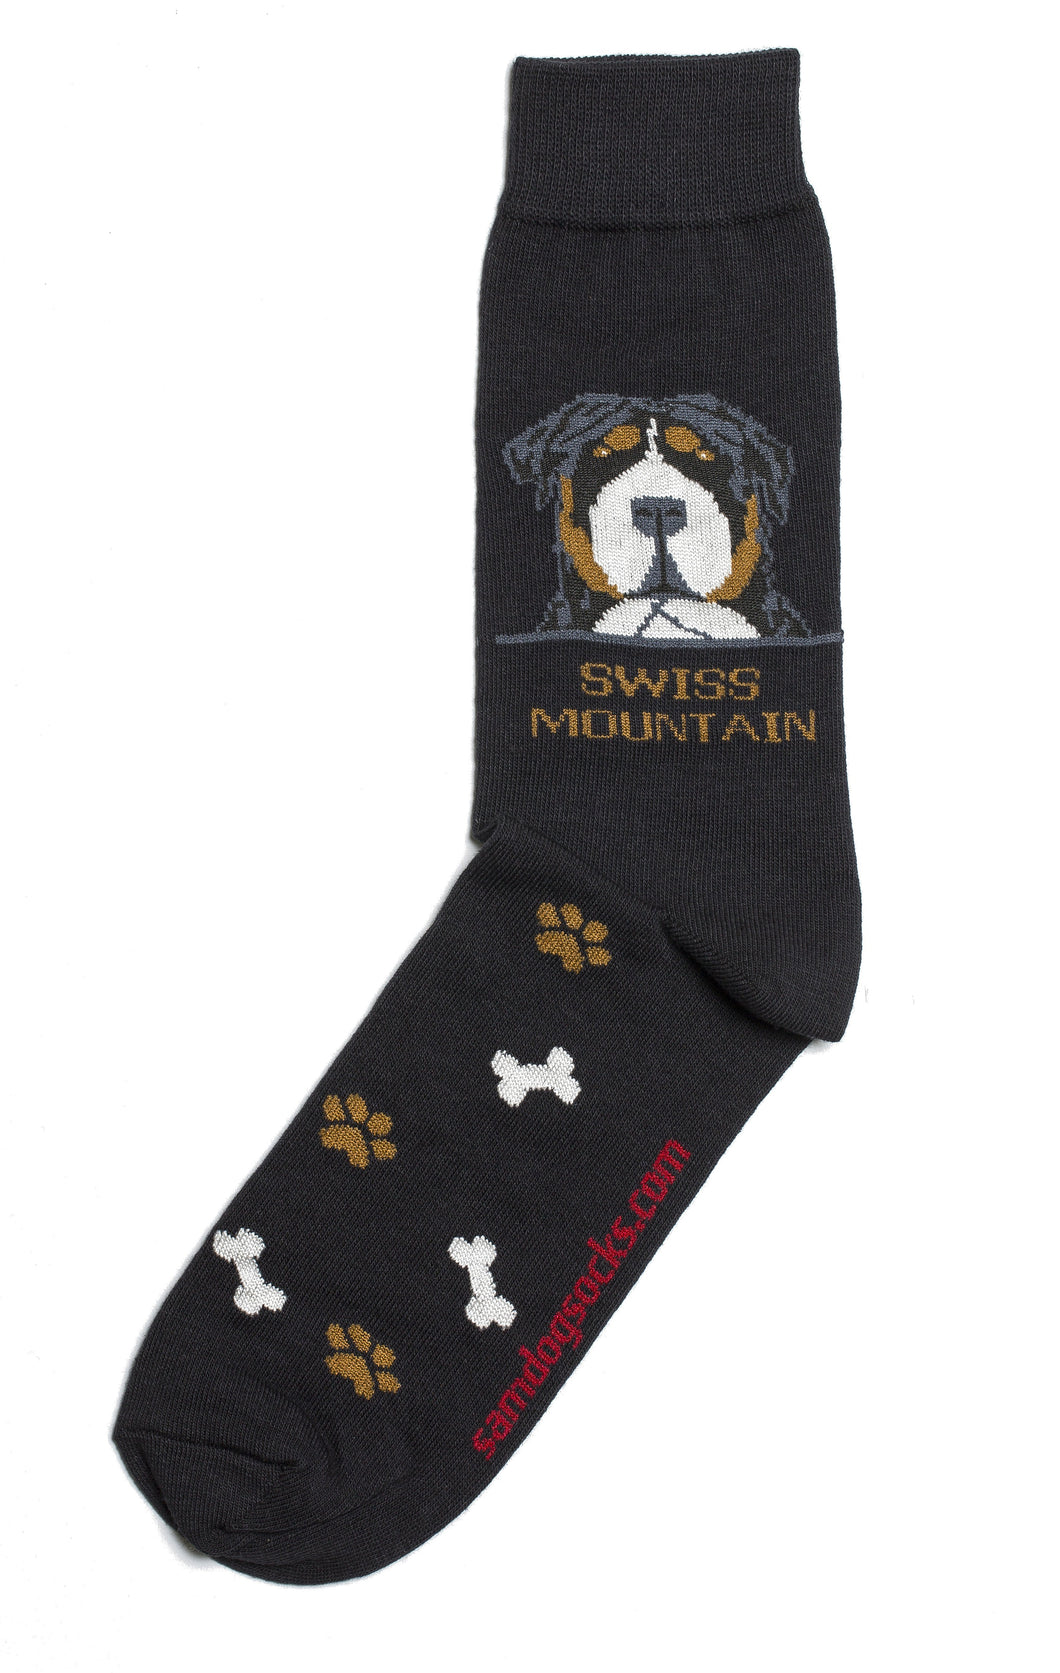 Swiss mountain Dog Socks Mens - samnoveltysocks.com